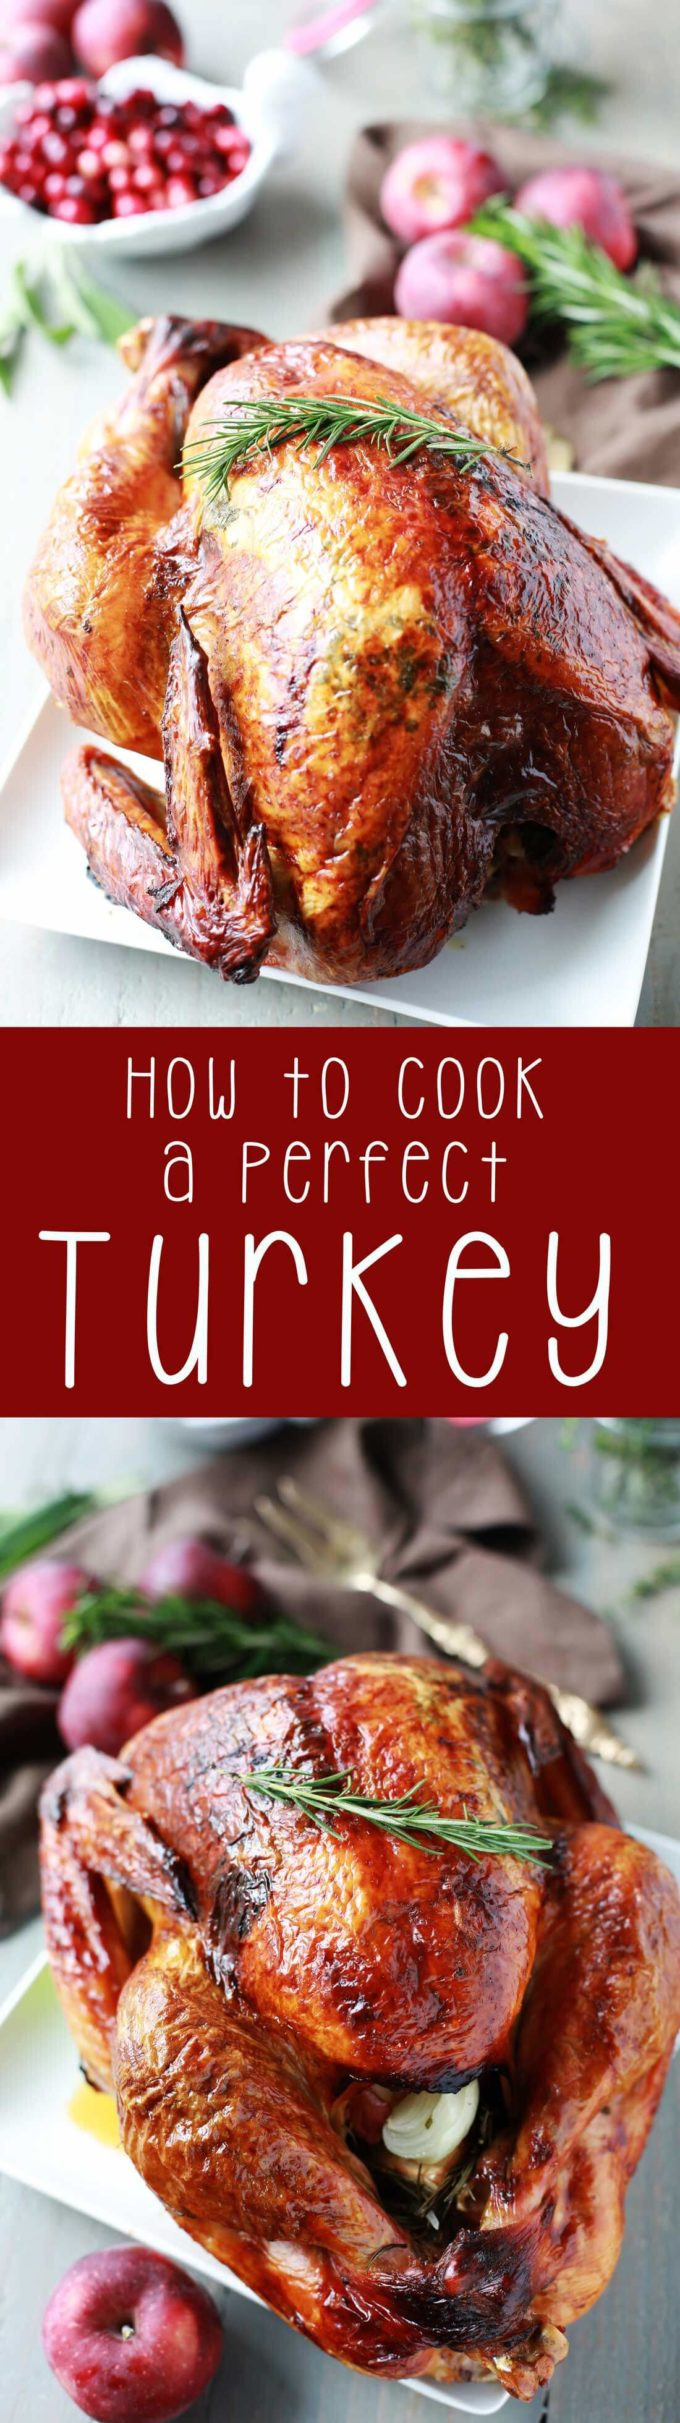 Bake Thanksgiving Turkey  How to Cook a Perfect Turkey Eazy Peazy Mealz